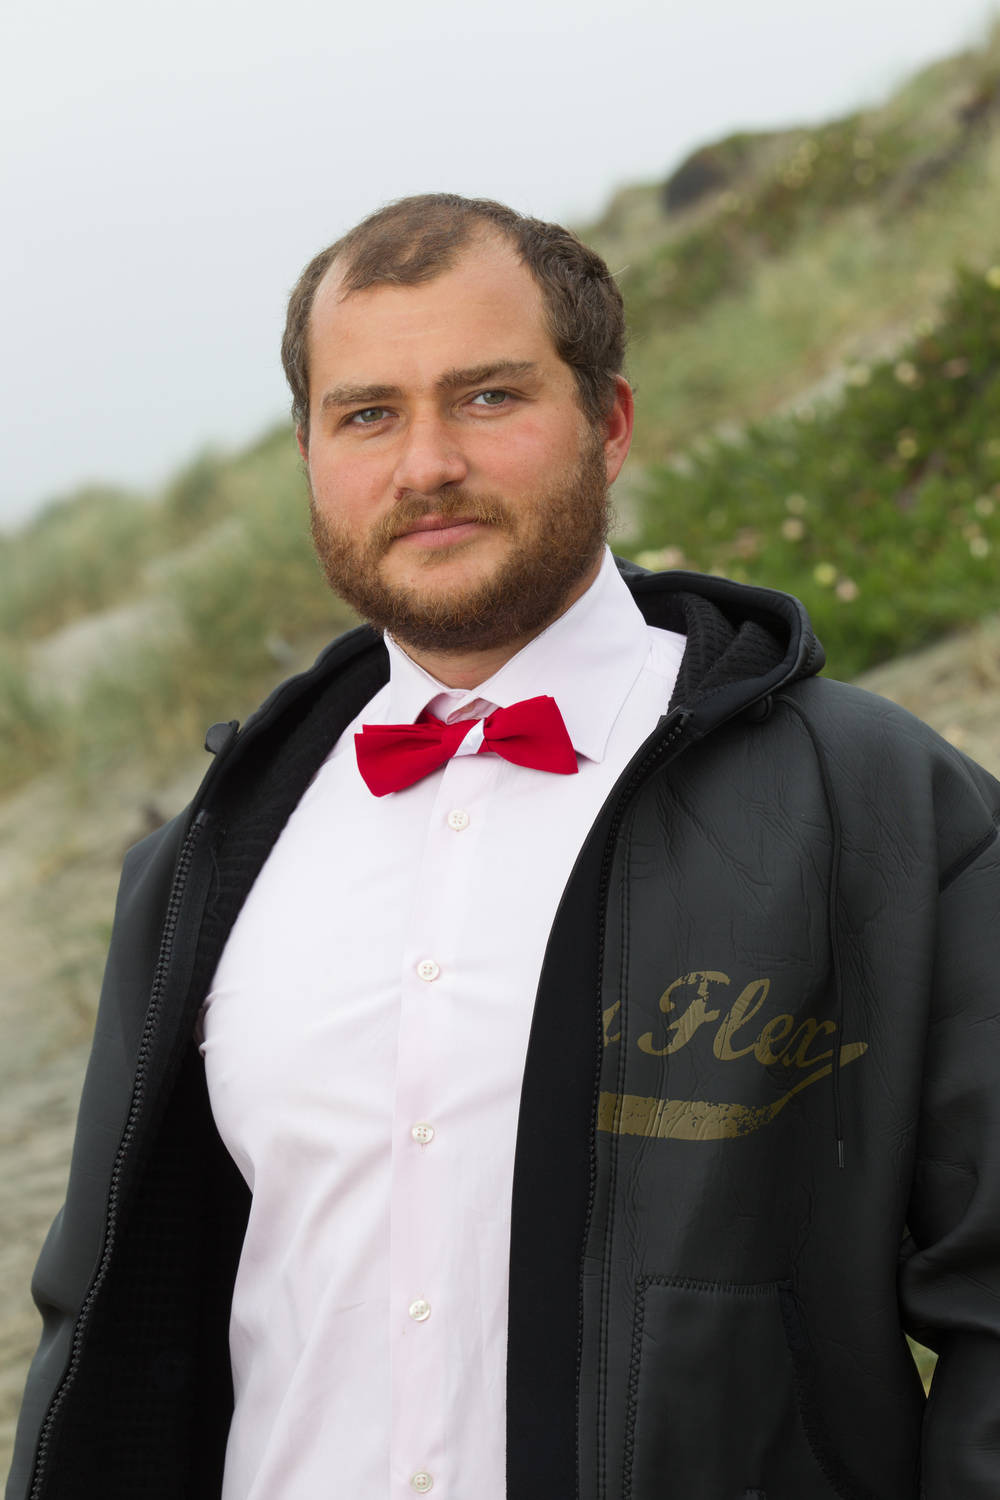 Diver Down Flag Bow Tie in the California Dapper Bow Tie Collection